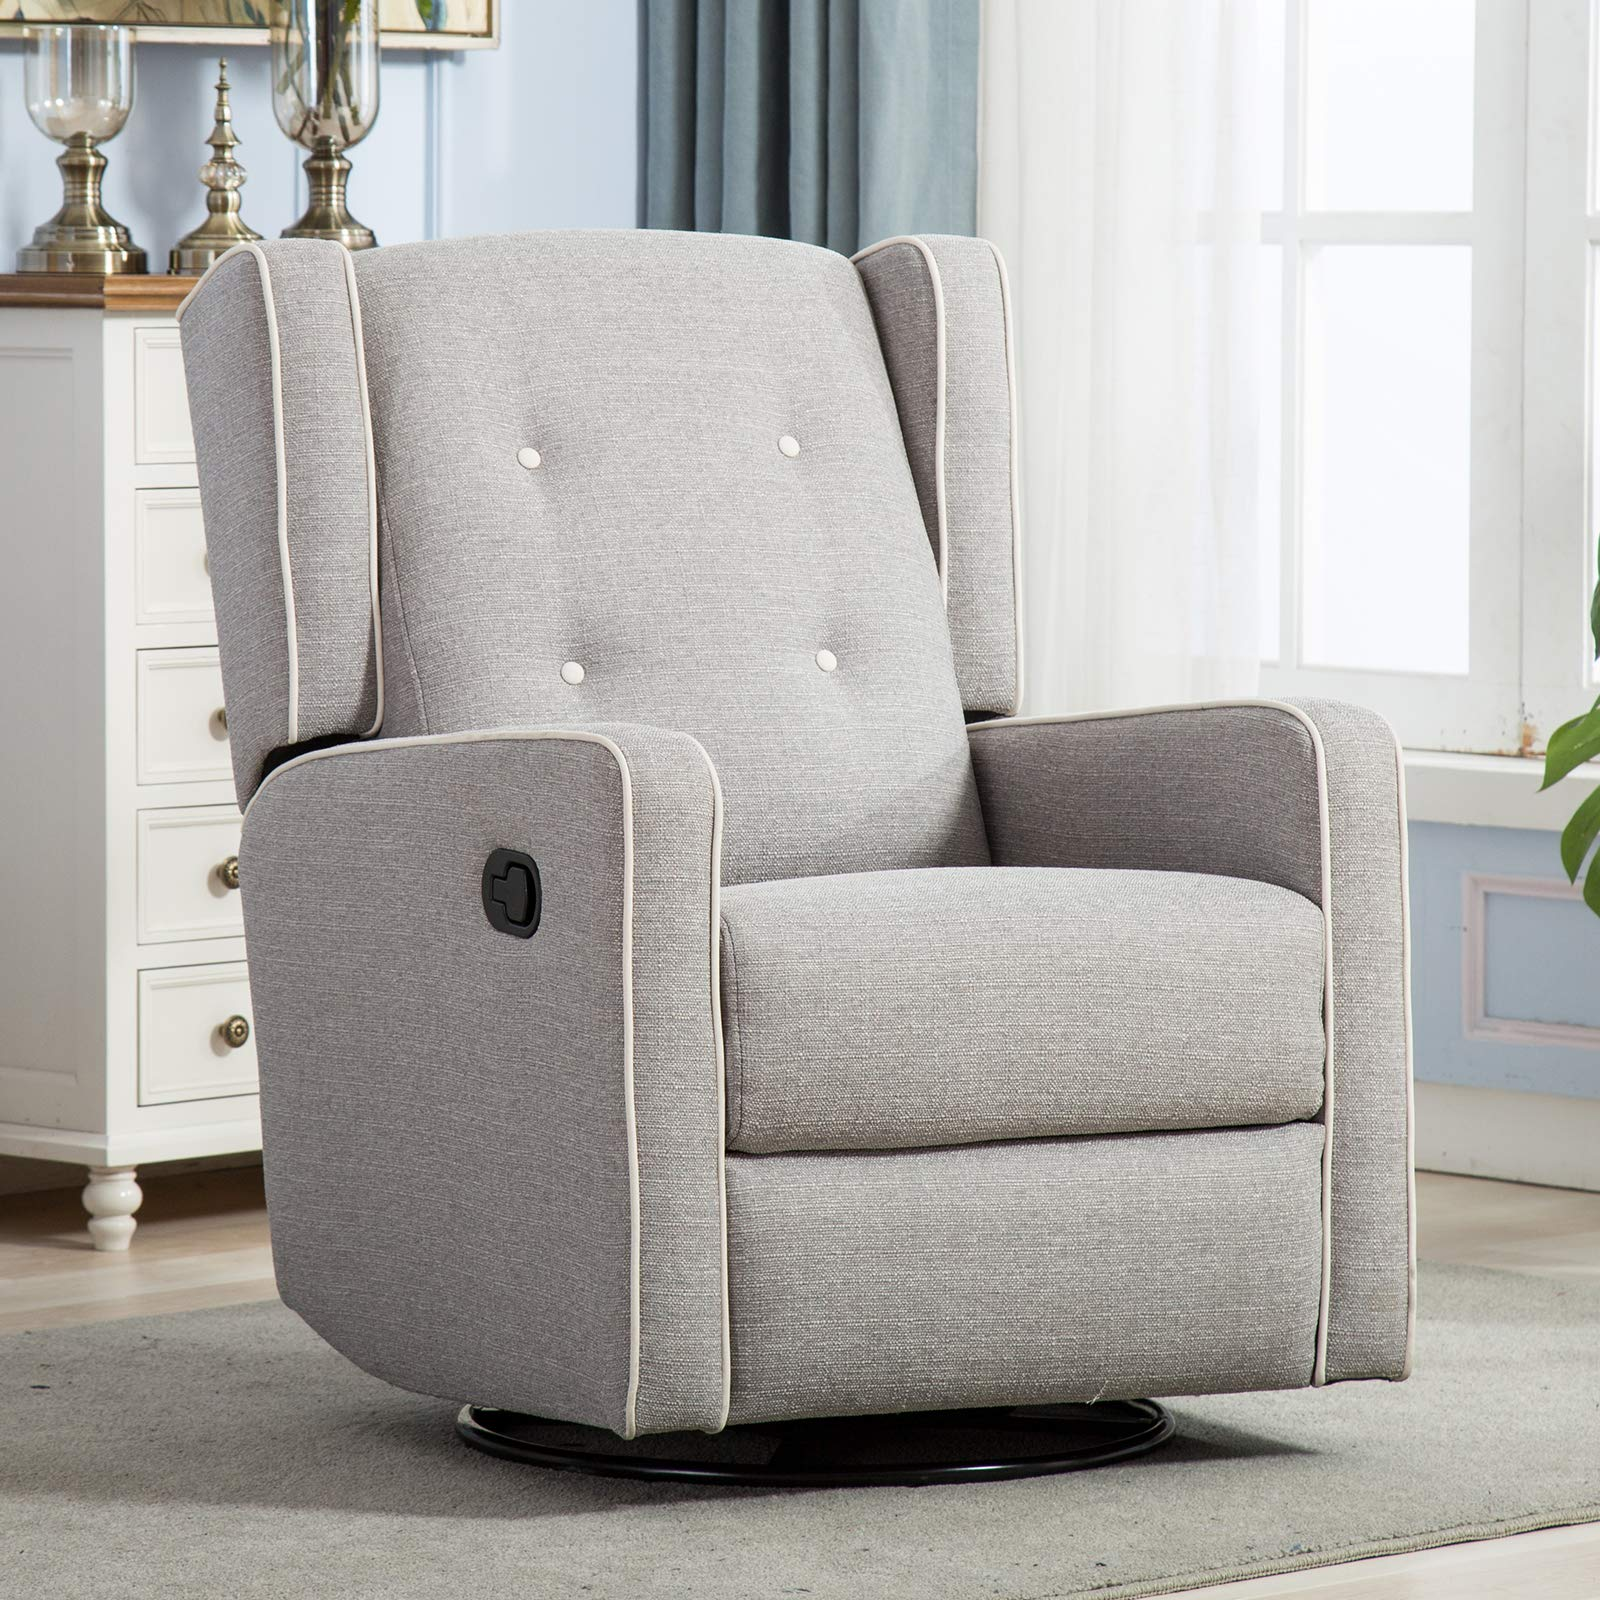 CANMOV Swivel Rocker Recliner Chair - Manual Reclining Chair, Single Seat Reclining Chair, Gray by CANMOV